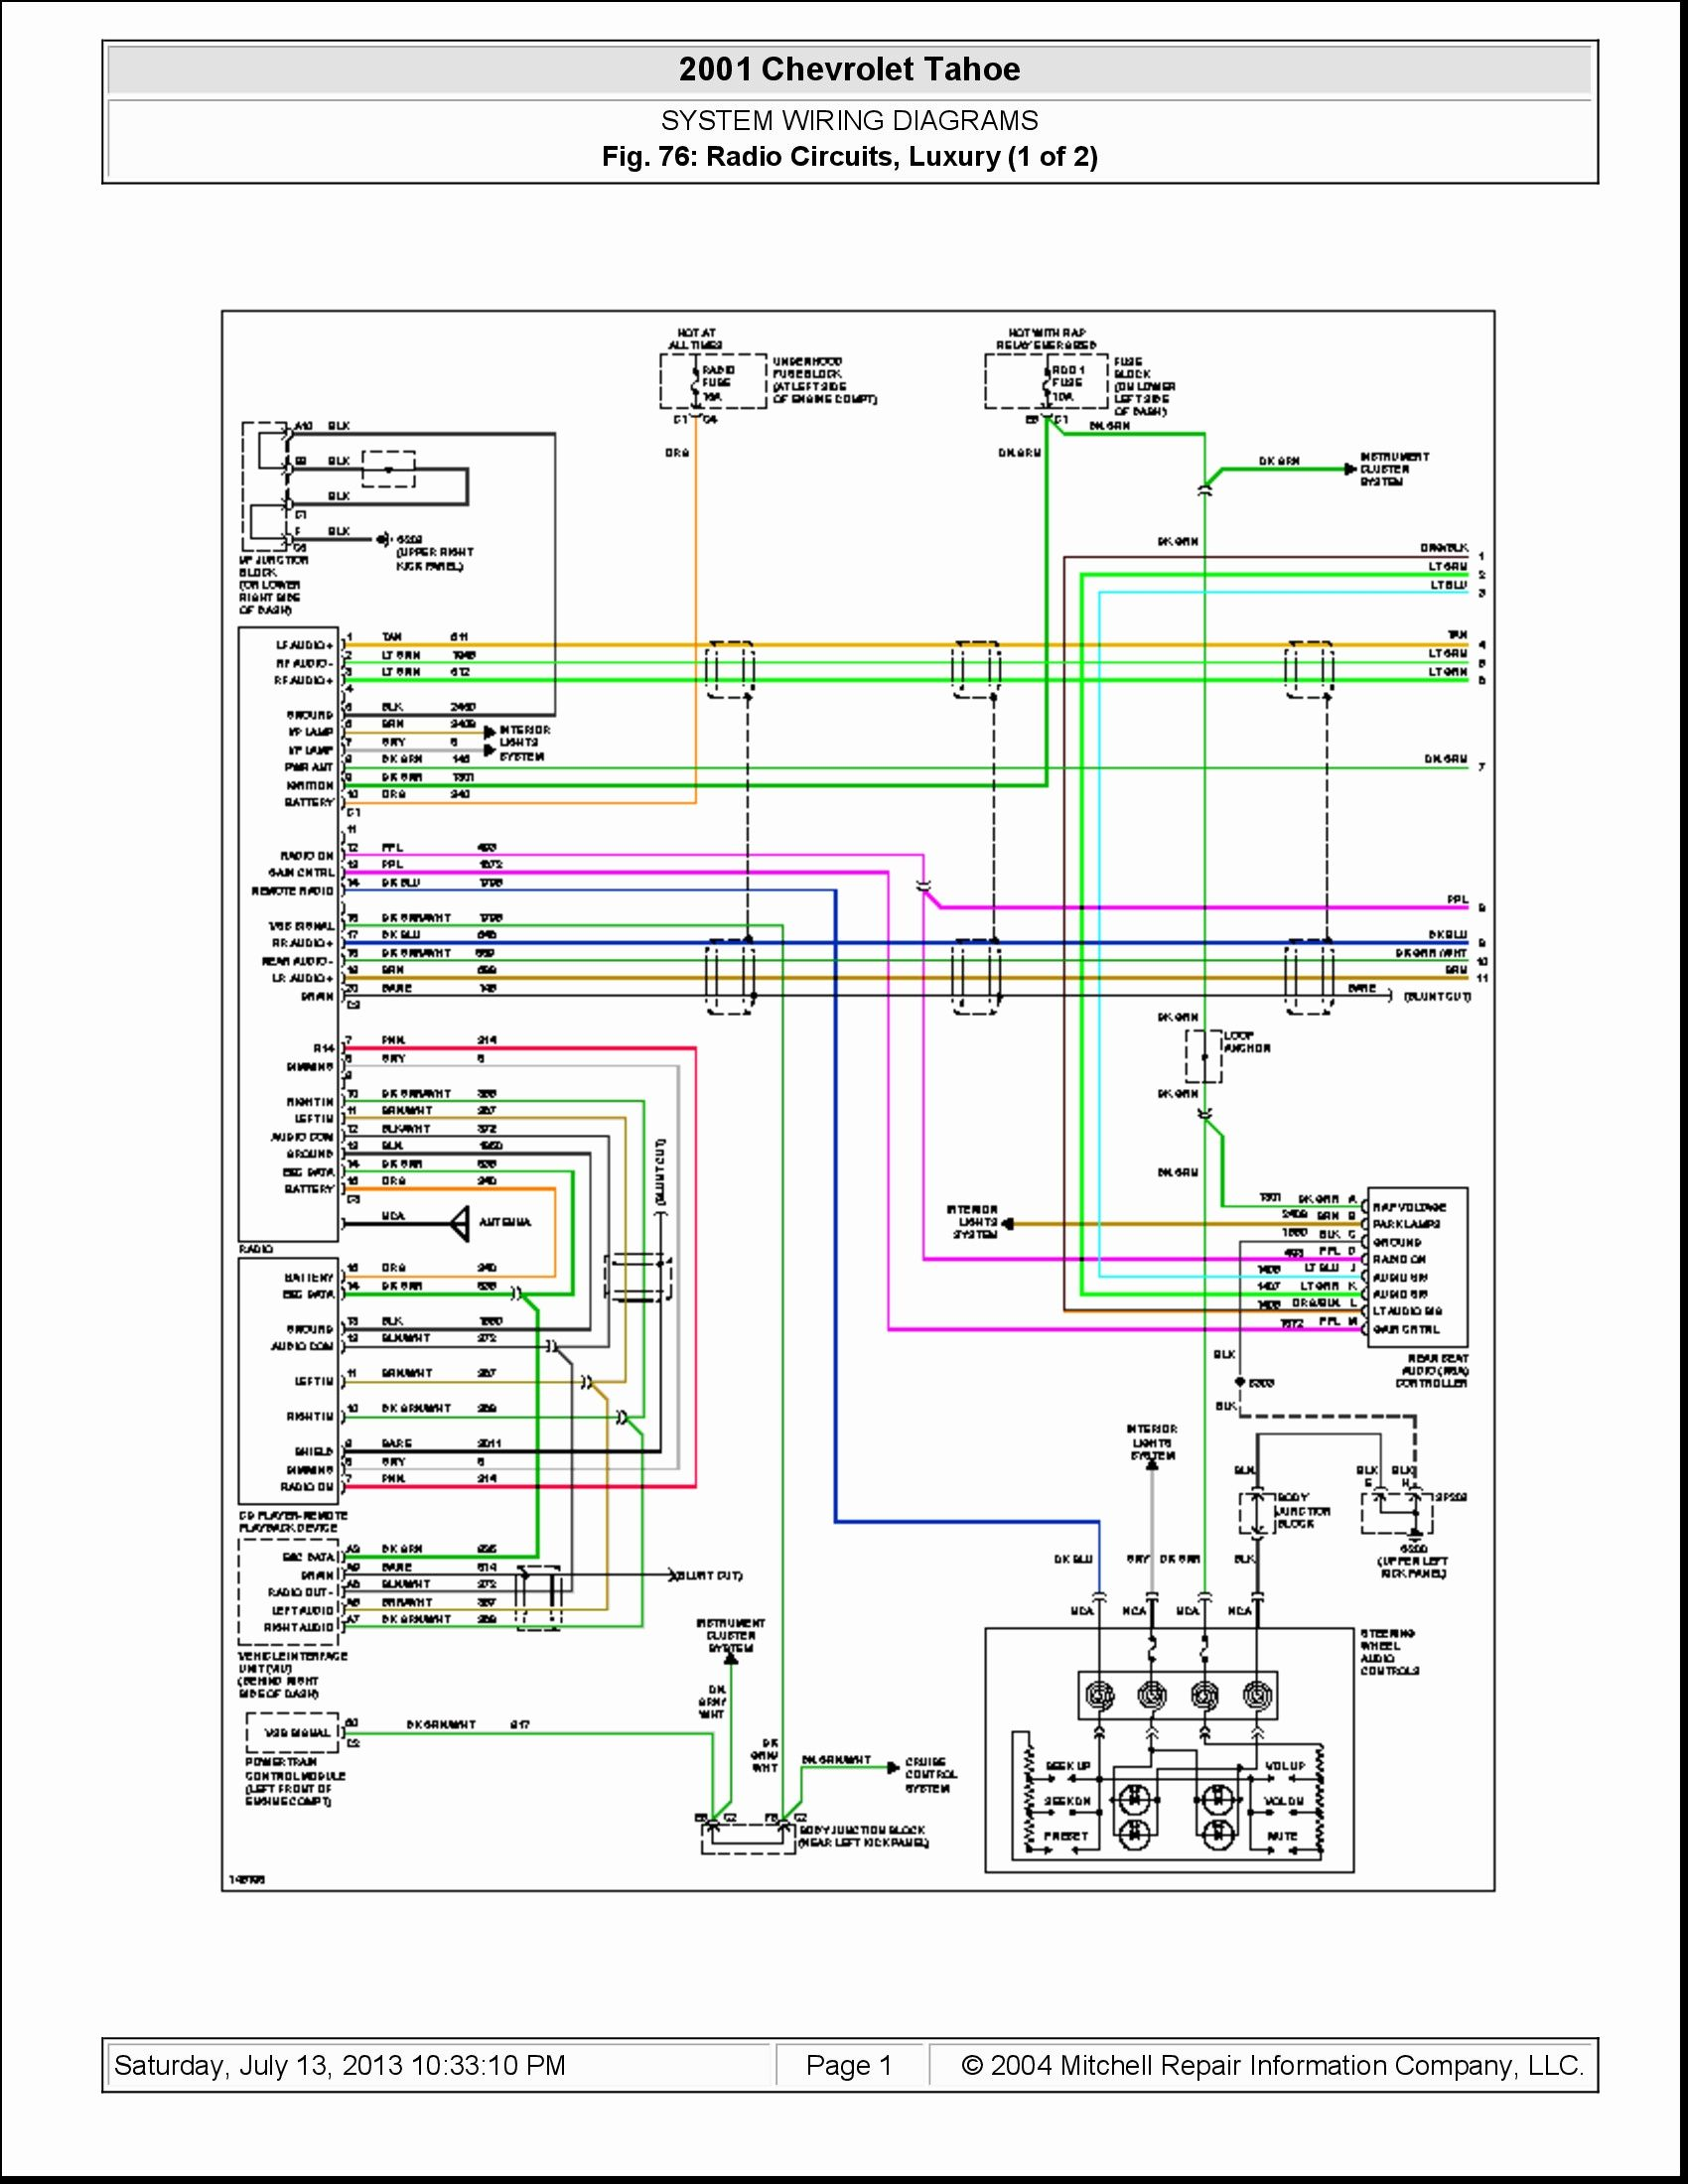 2014 Silverado Wire Diagram - Vauxhall Astra Fuse Box 07 -  7ways.1990-300zx.pistadelsole.it | 2014 Silverado Wire Diagram |  | Pista del Sole